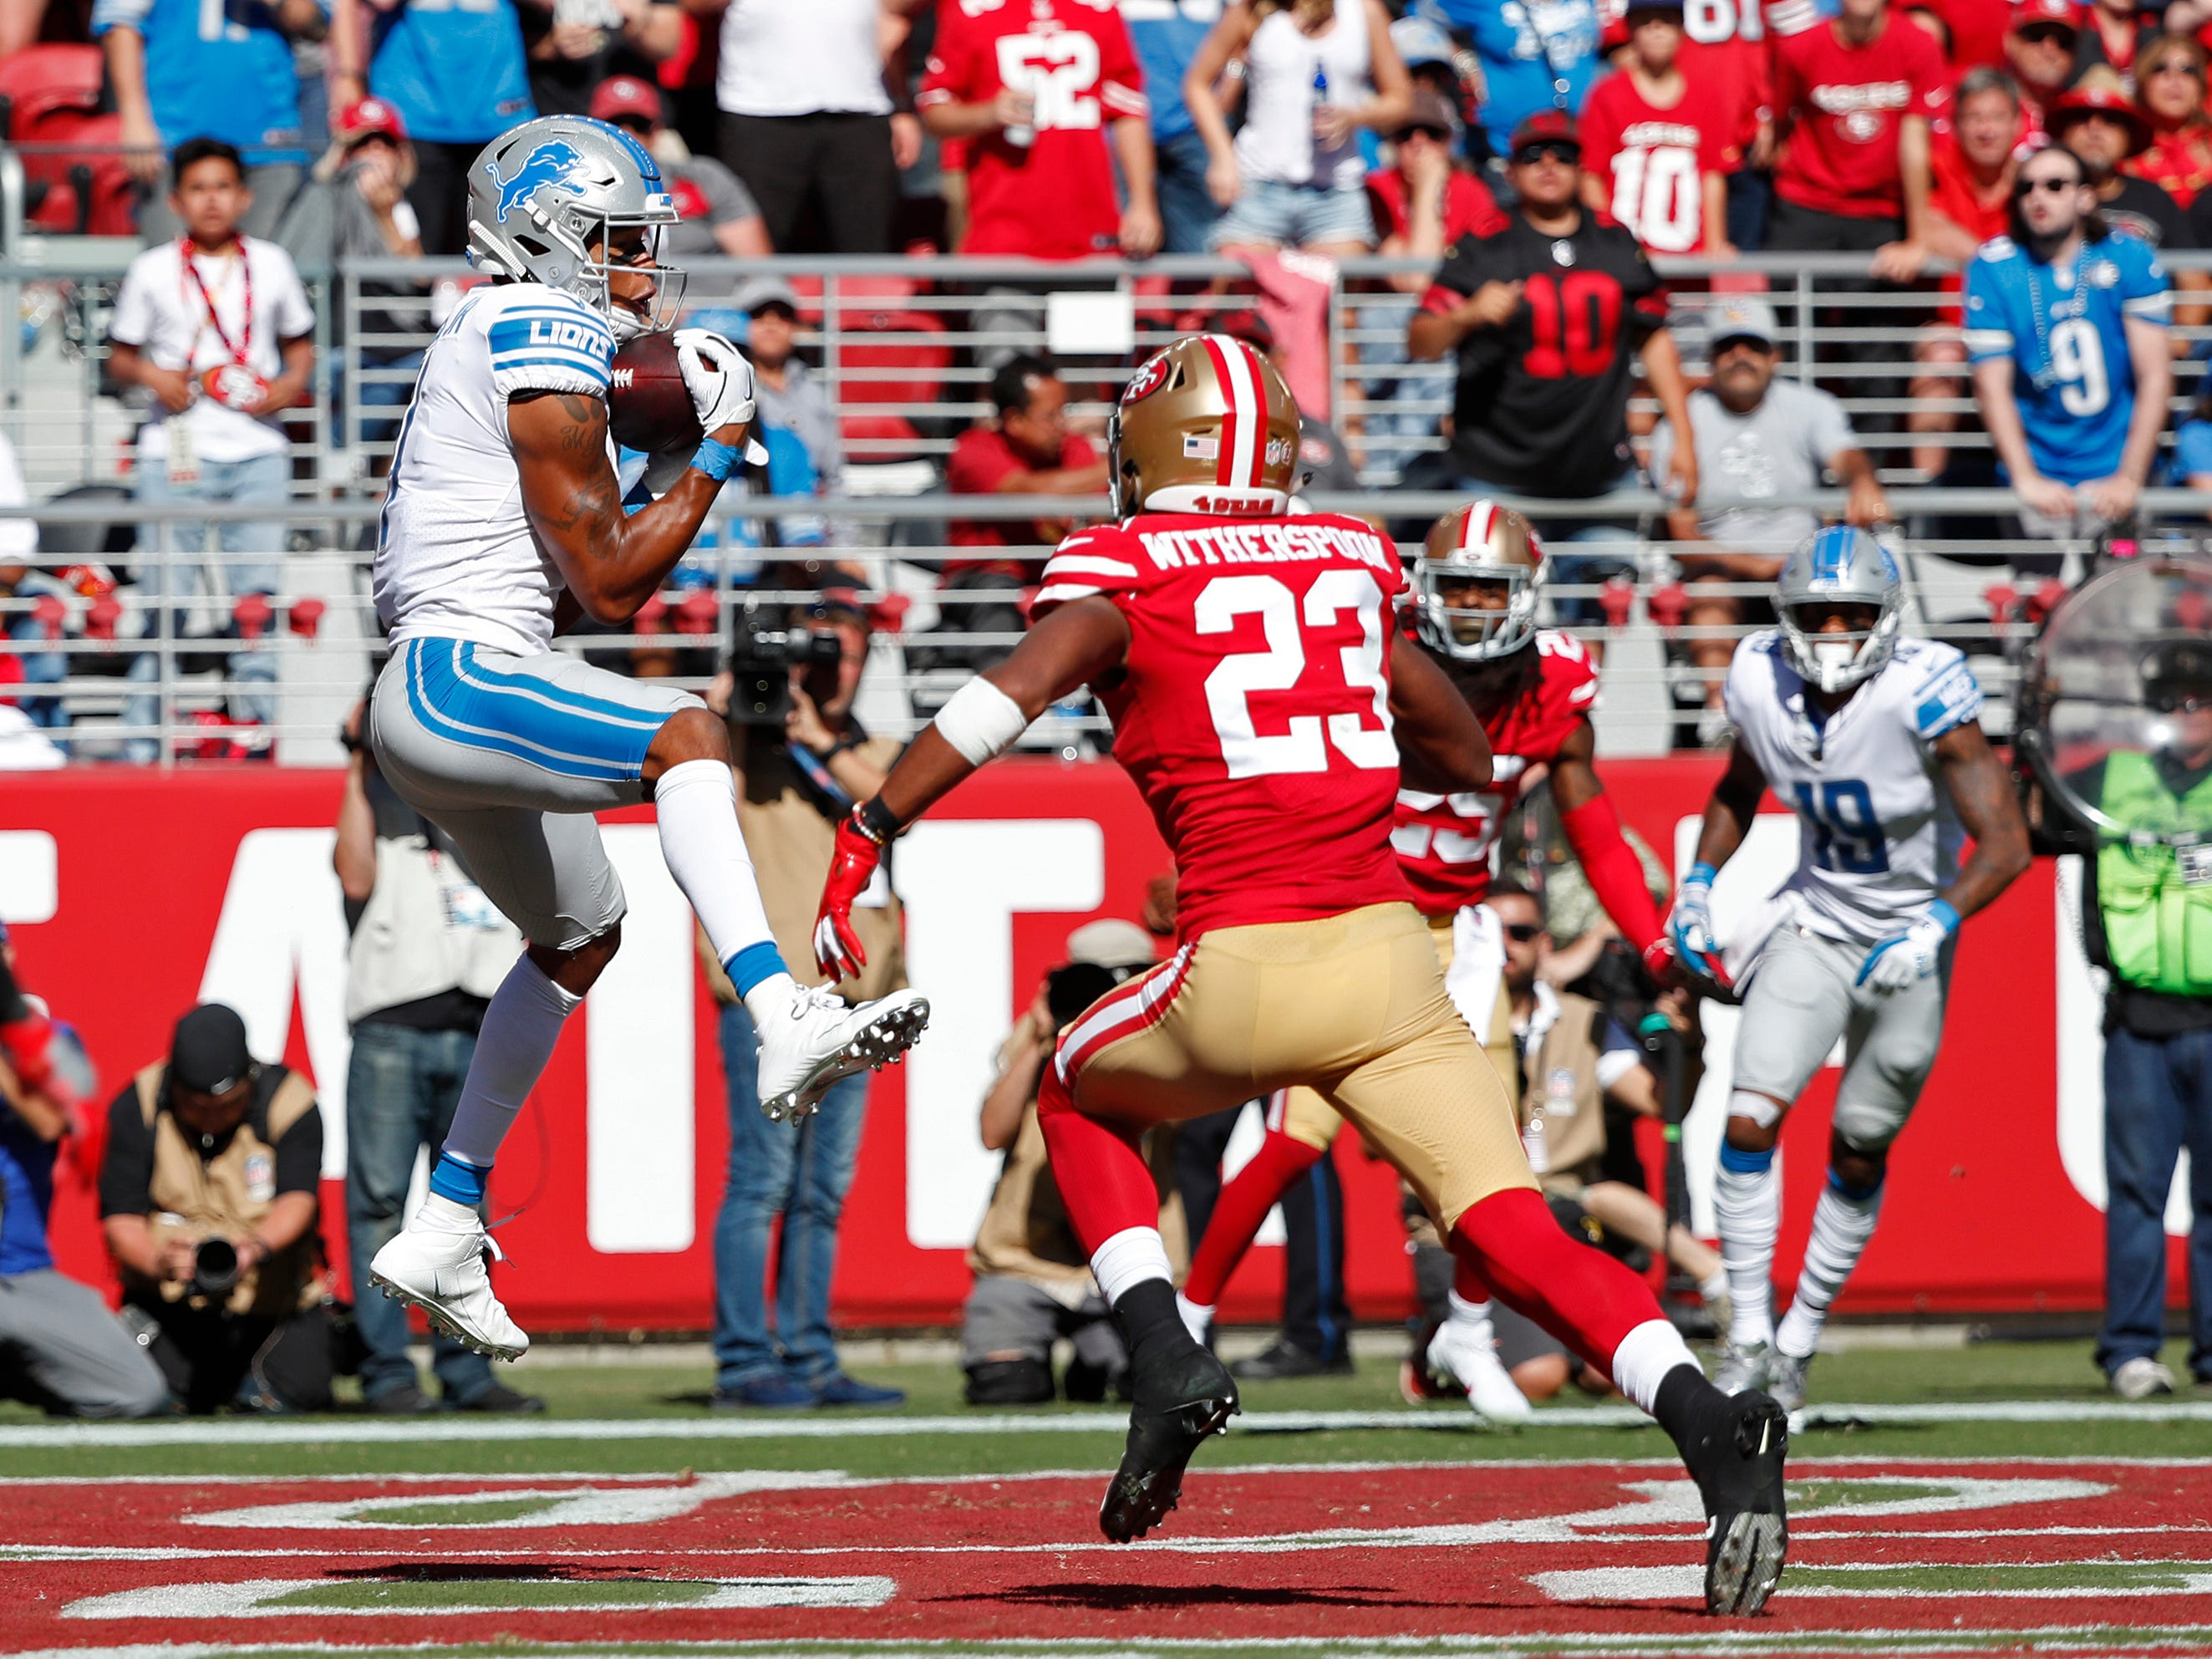 Detroit Lions wide receiver Marvin Jones Jr. catches the ball for a touchdown as San Francisco 49ers cornerback Ahkello Witherspoon looks on during the second half.